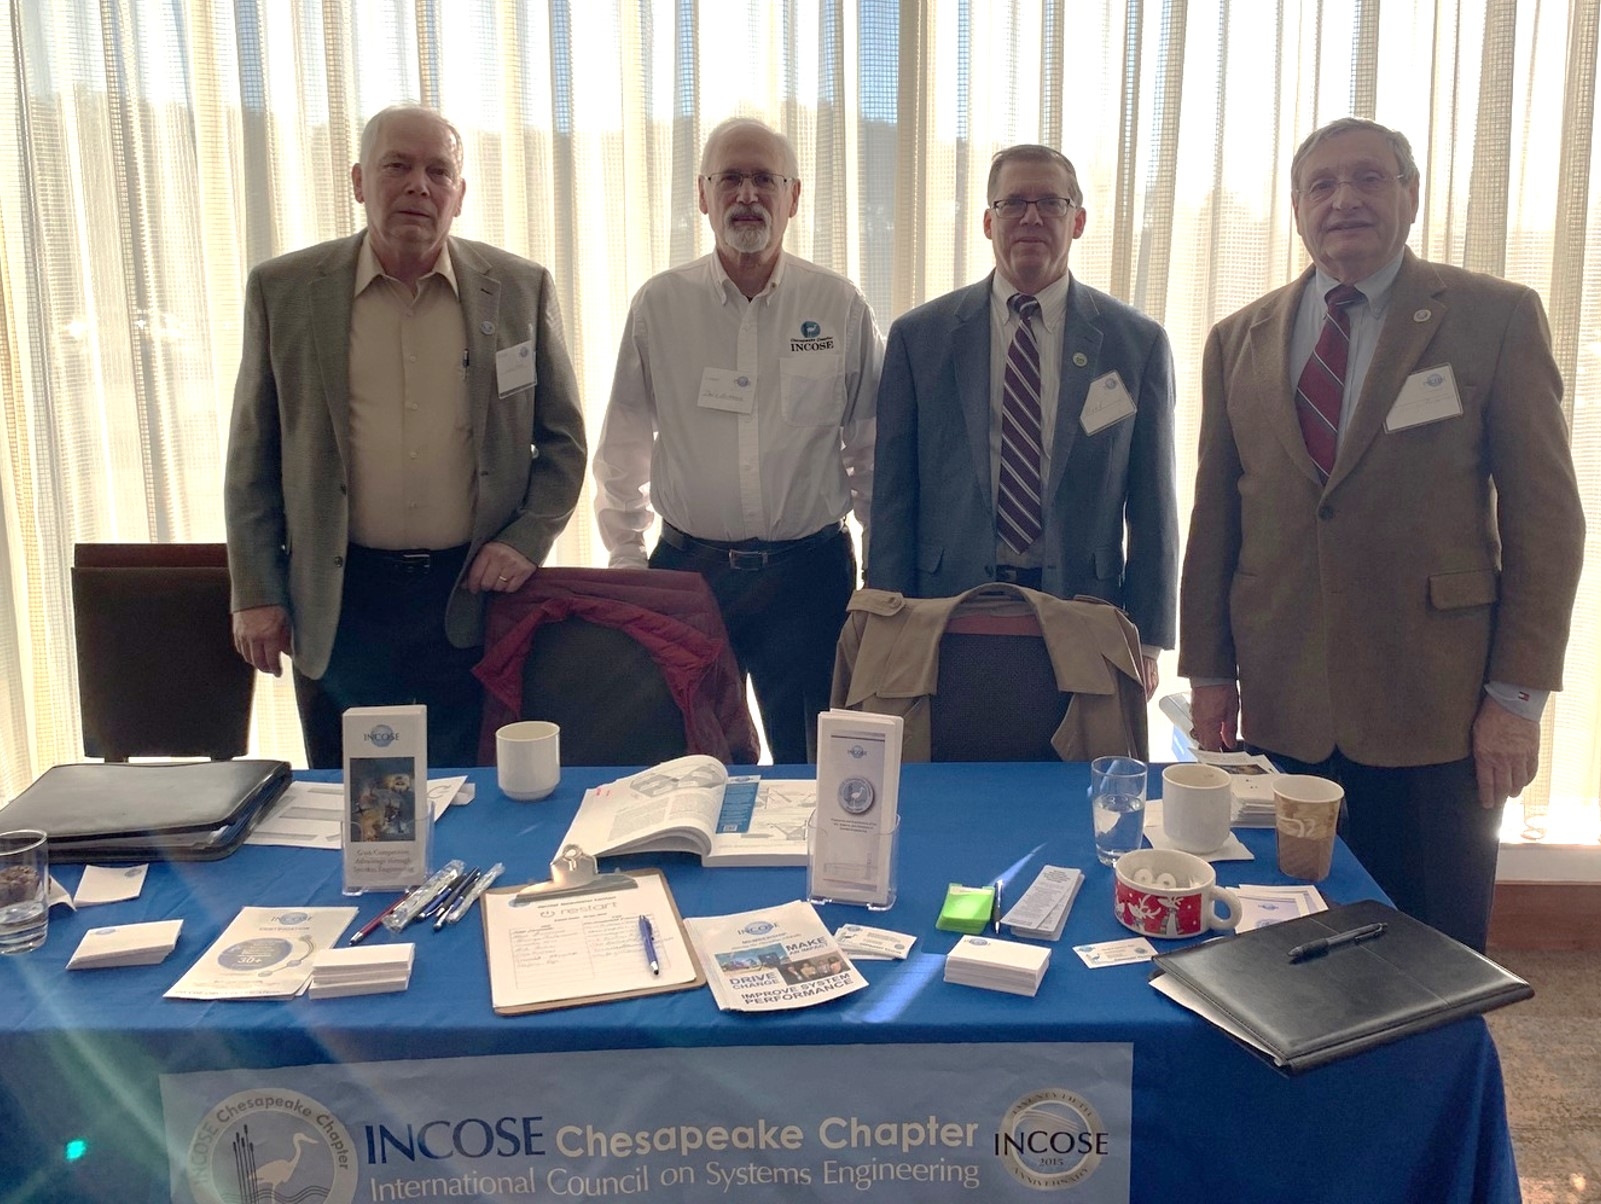 Participants of the January 28, 2019 reStart job fair event: L-R Butch Rappe, CSEP; Dave Alldredge, ESEP, Student Division Liaison; Mark Kaczmarek, ASEP, Membership Director; George Anderson, ESEP, Past President.